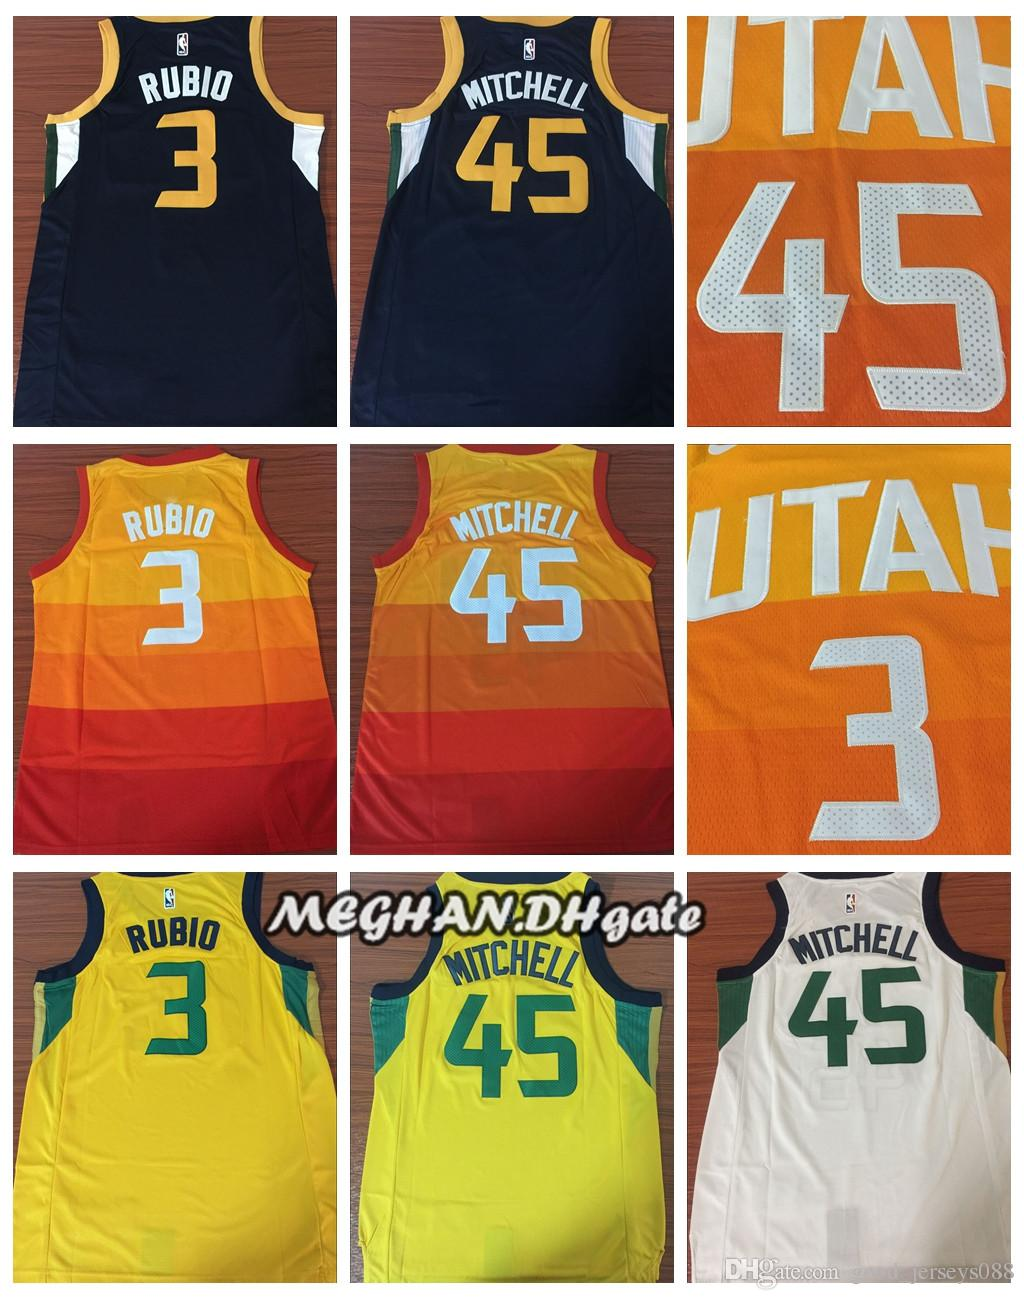 huge discount b7f25 59fbb Utah Edition City 5 Donovan Mitchell Jerseys 3 Ricky Rubio White Blue  Yellow Gold Shirts 27 Rudy Gobert Embroidery Stitched Jerseys